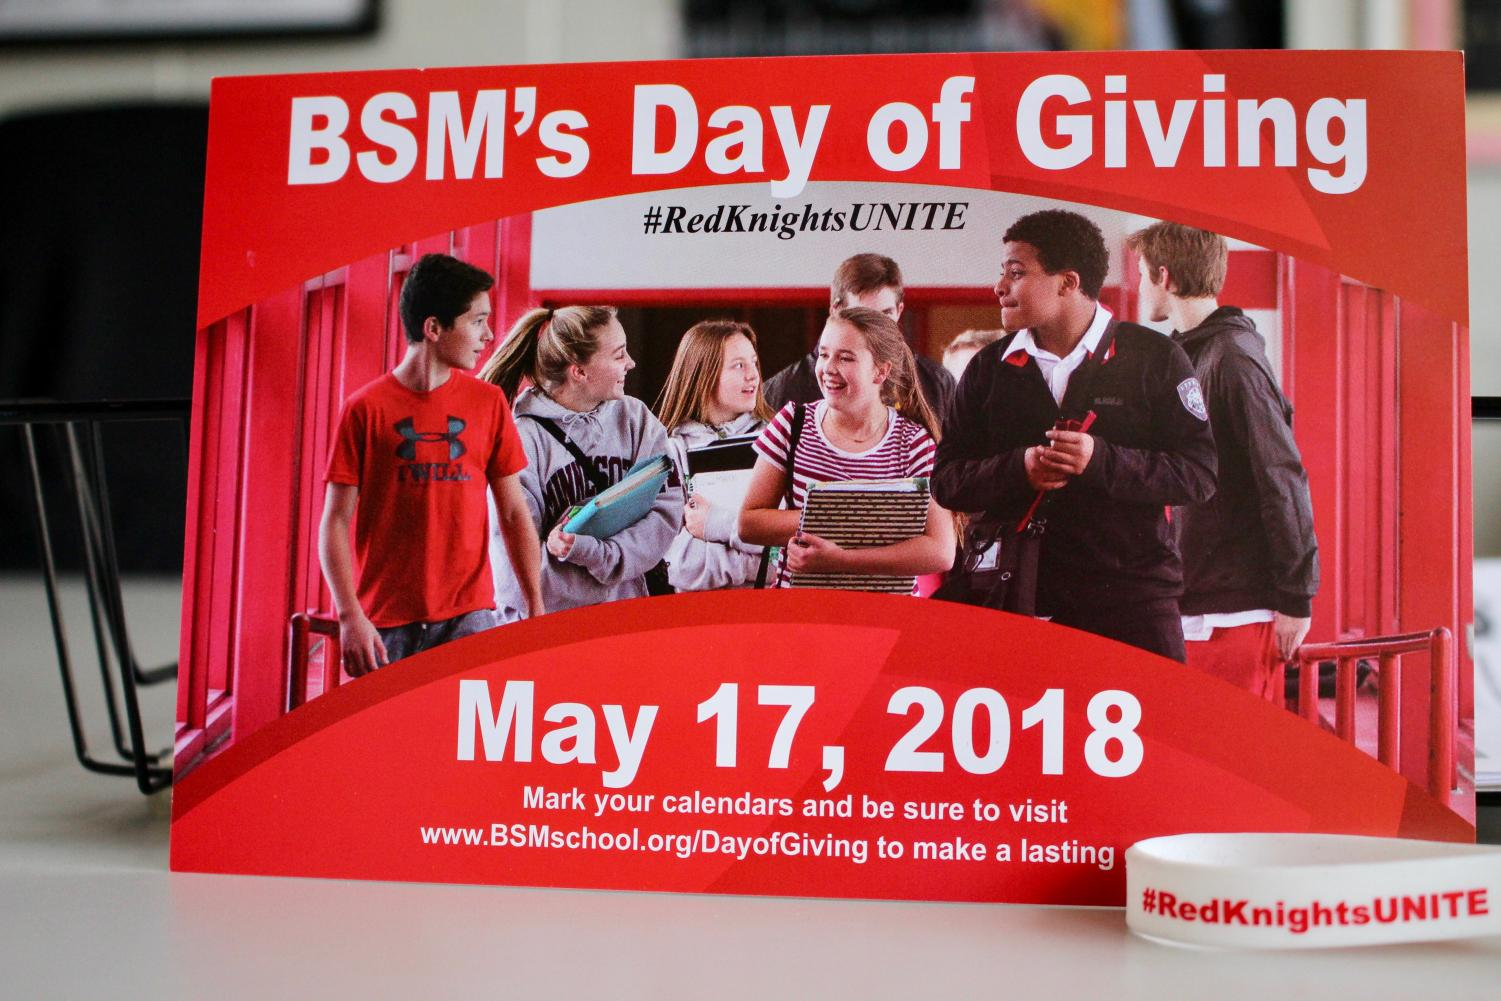 BSM's annual Day of Giving promotes donations from the BSM community which cover the costs to run the school that student tuition doesn't. This is a day-long event that is taking place on May 17, 2018.